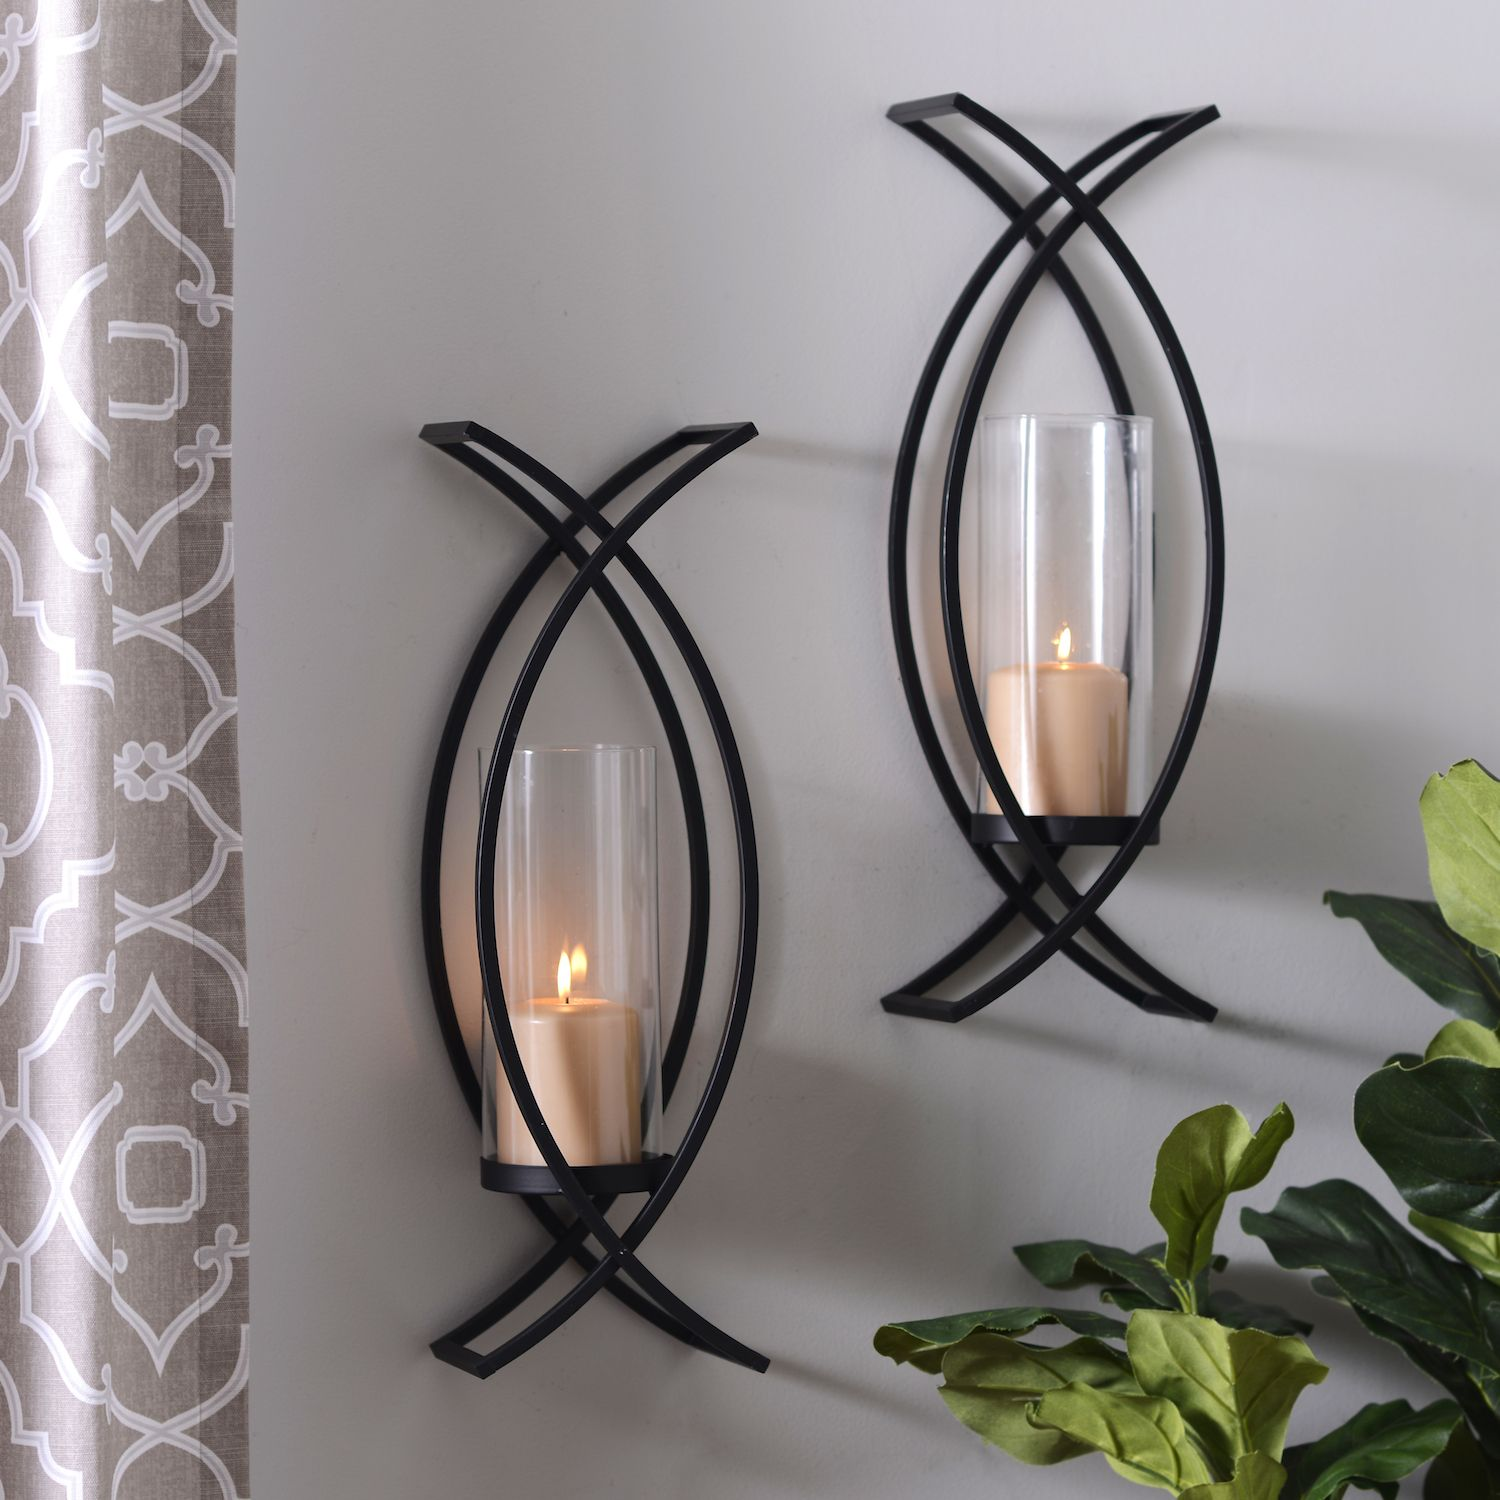 Product Details Charlie Crisscross Sconces, Set of 2 in ... on Decorative Wall Sconces Candle Holders Centerpieces Ebay id=31790